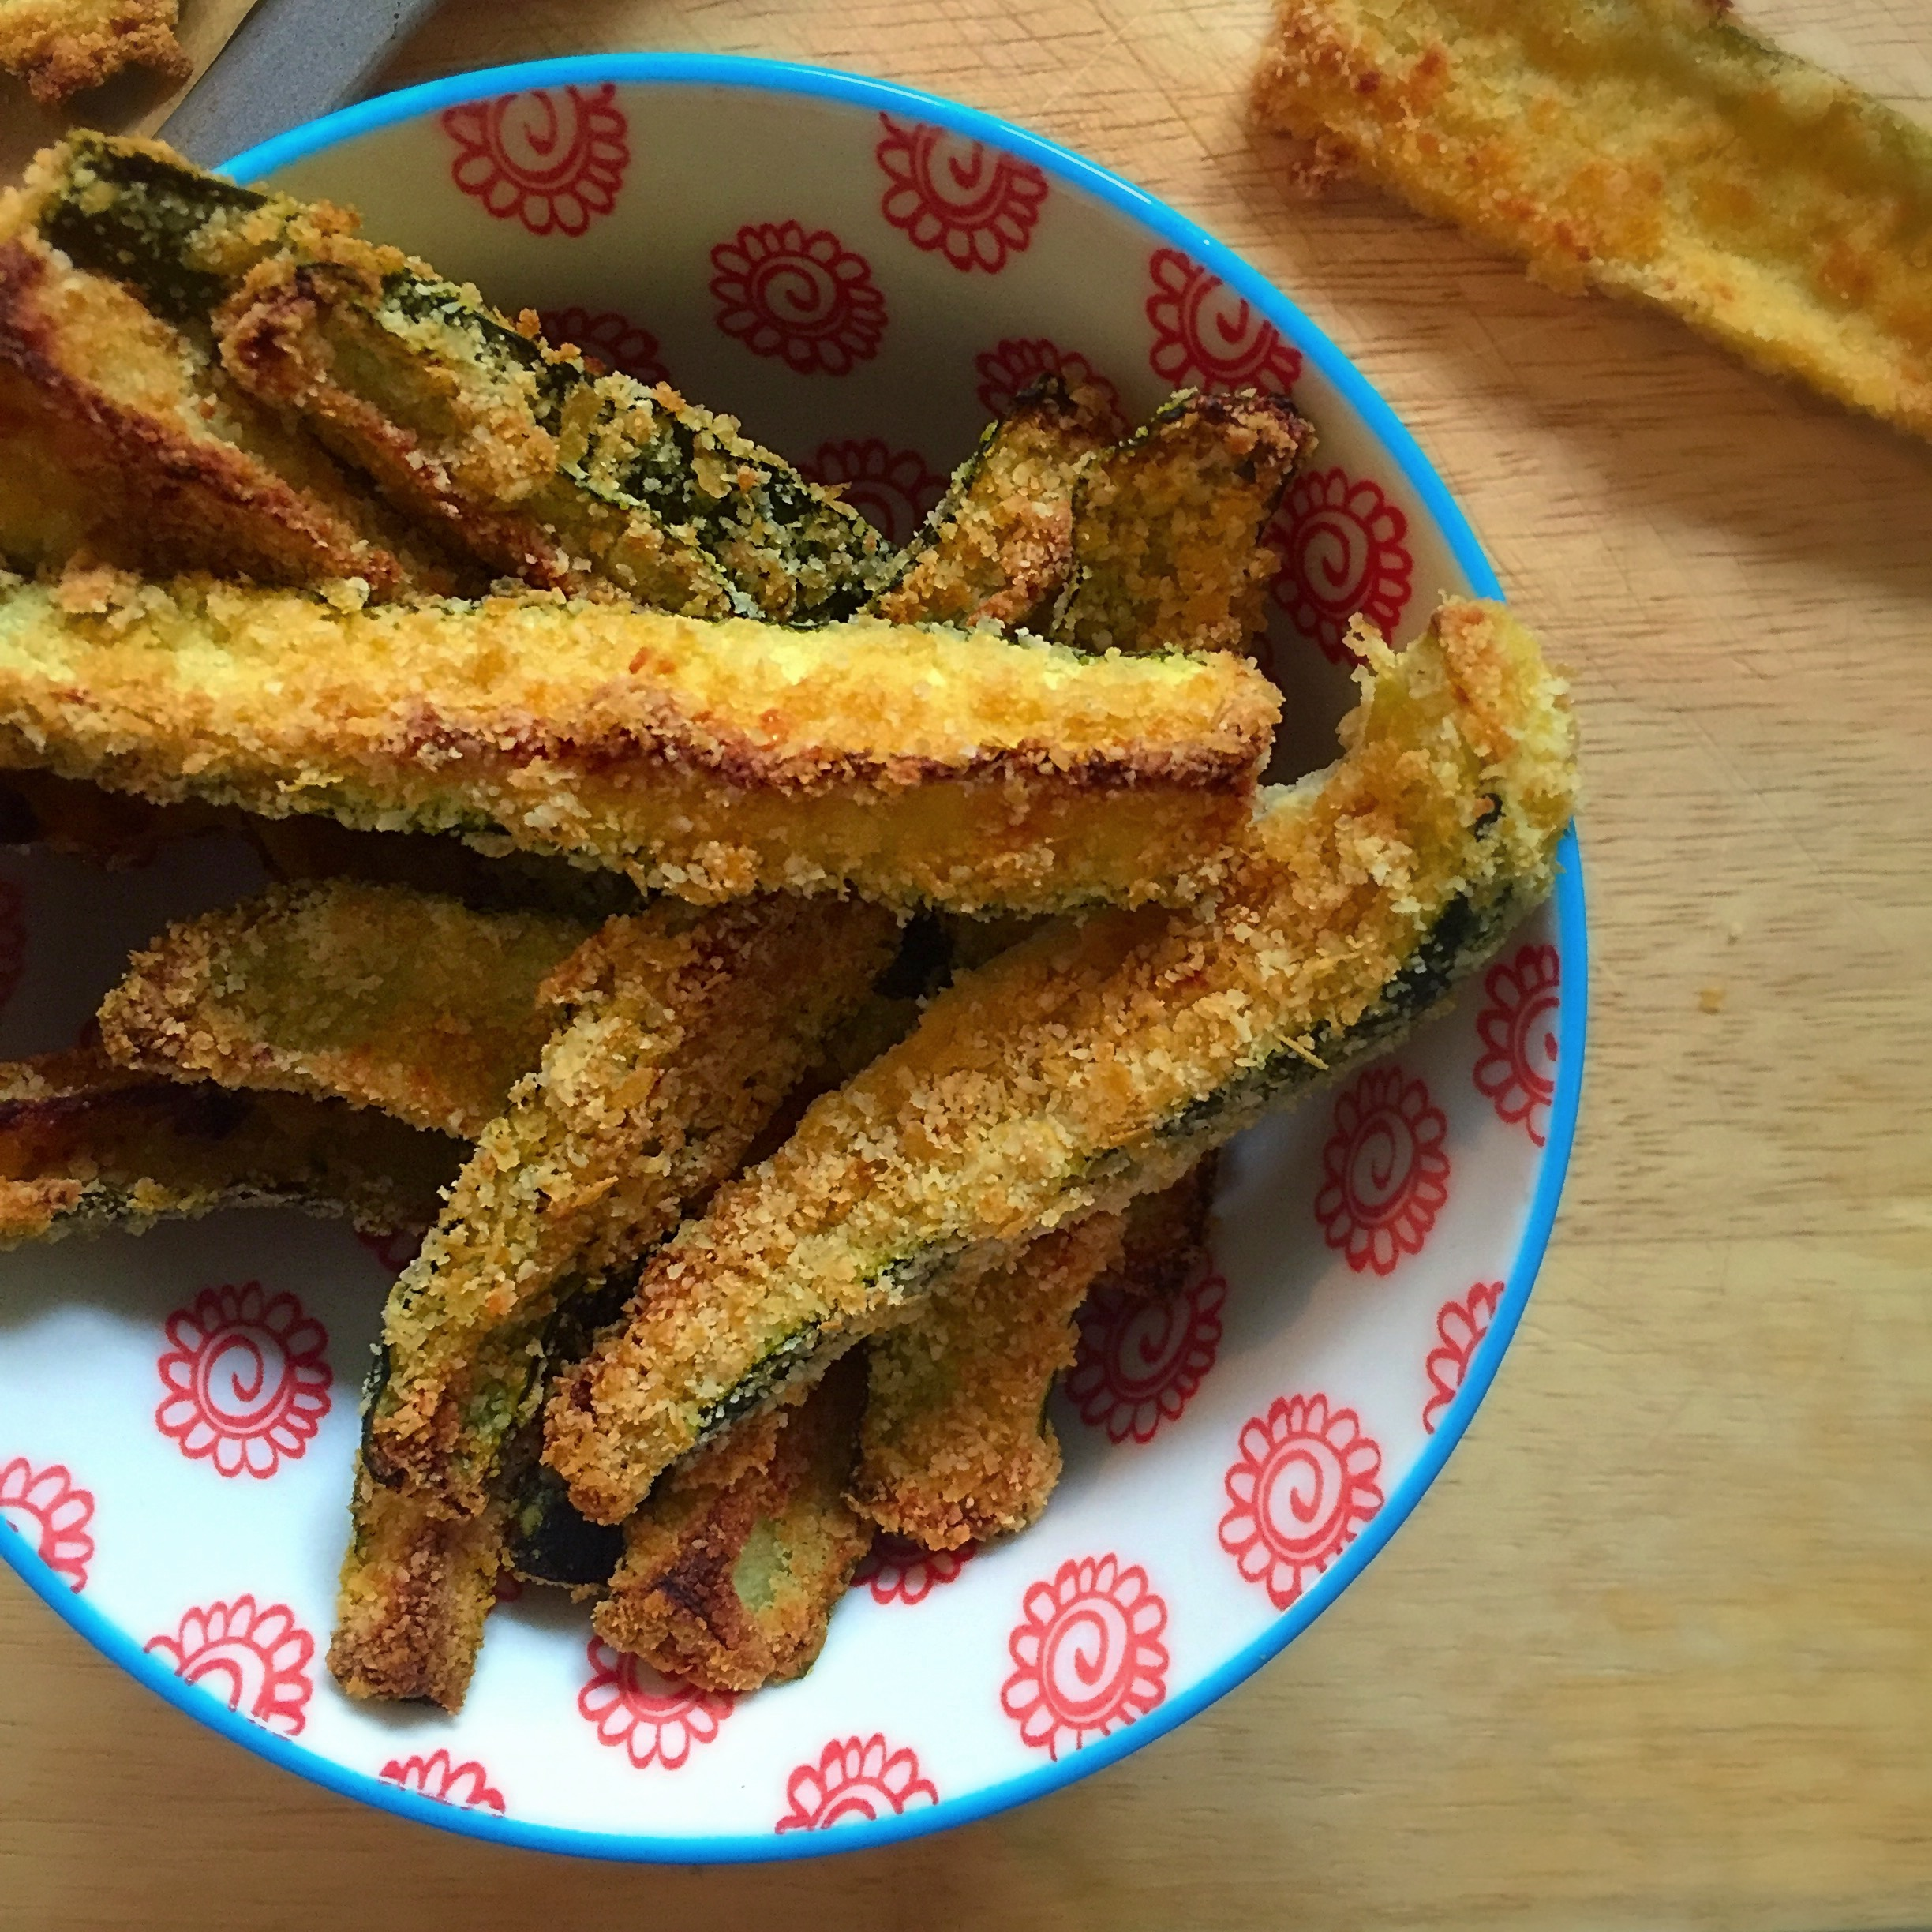 Exquisite From Oven As Y Are Still Crunchy Hummus Or As A Healthy Alternativeto Spicy Courgette Chips Karmen Pirh Spicy Cheesyflavours Really Come Have It nice food Healthy Alternative To Chips